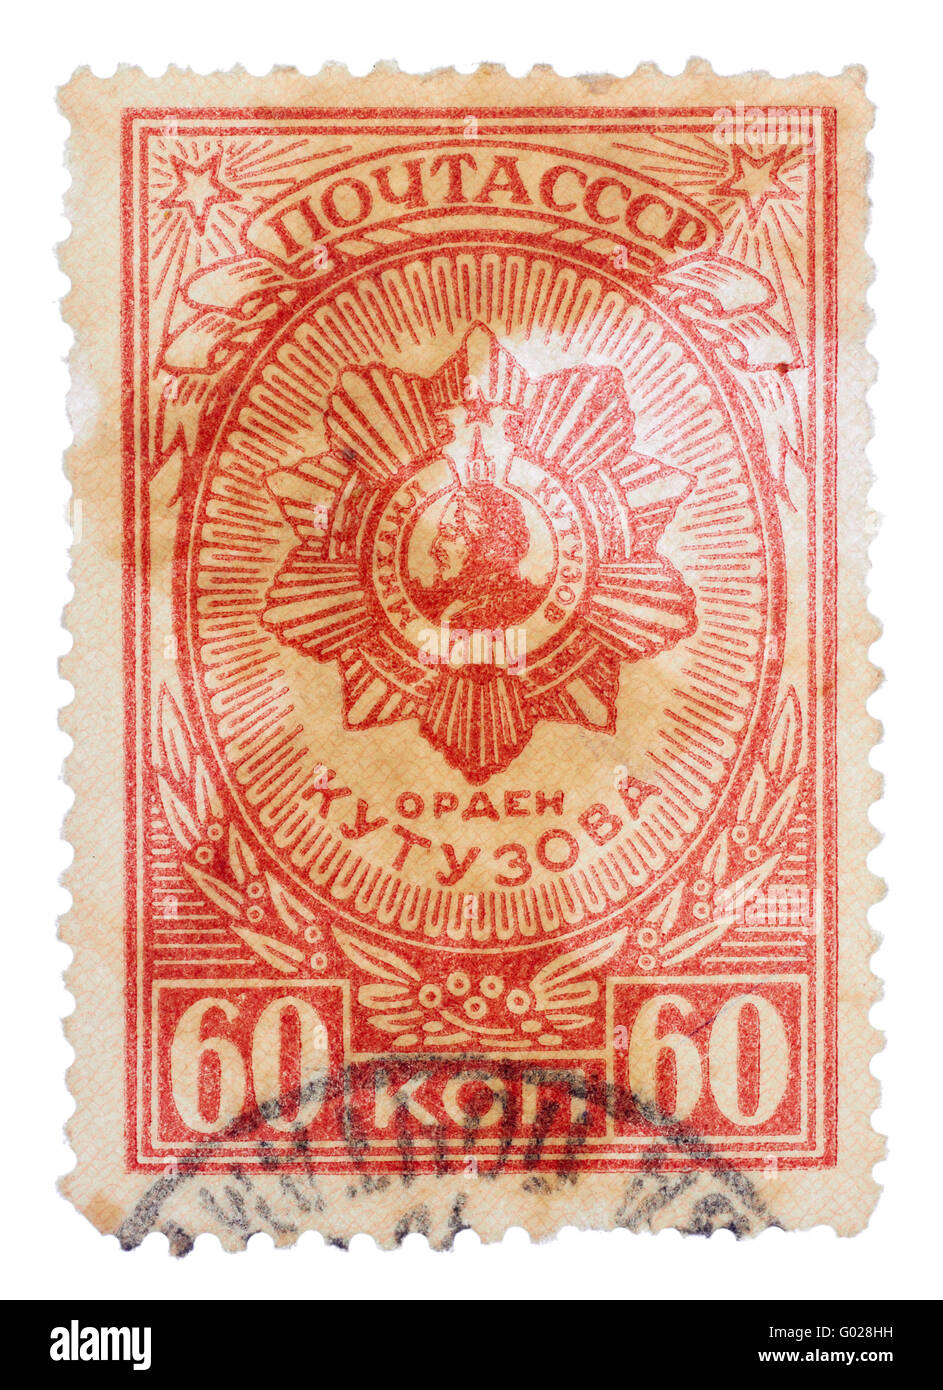 USSR - CIRCA 1945: A stamp printed in the USSR shows Order of Kutuzov, circa 1945 - Stock Image